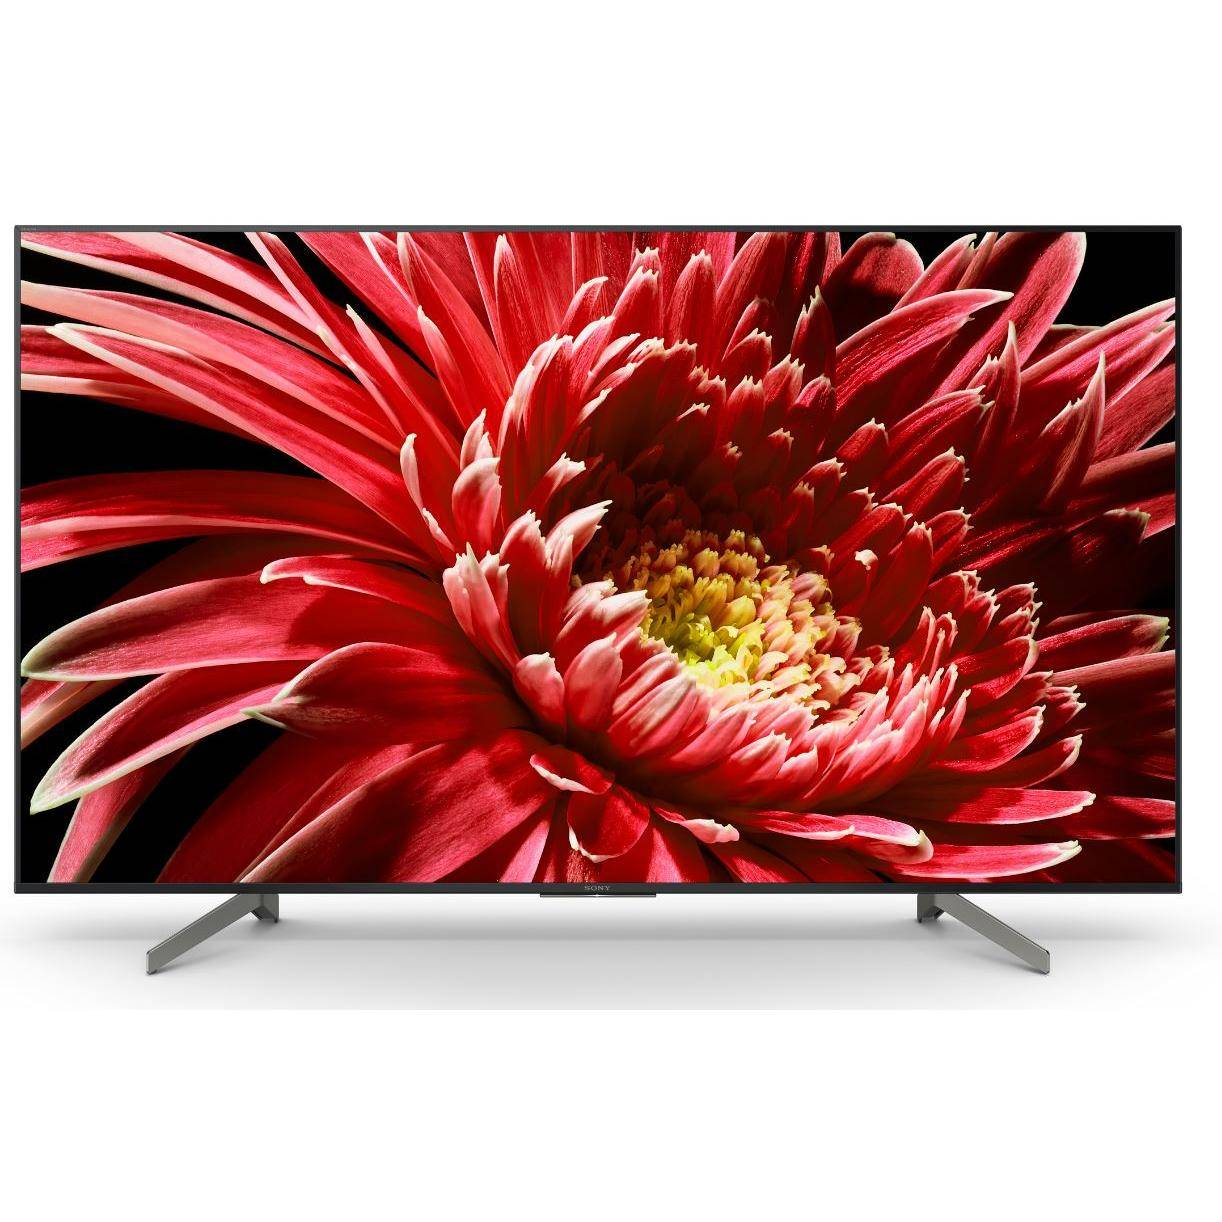 Televisions | Find, compare and buy at the best price